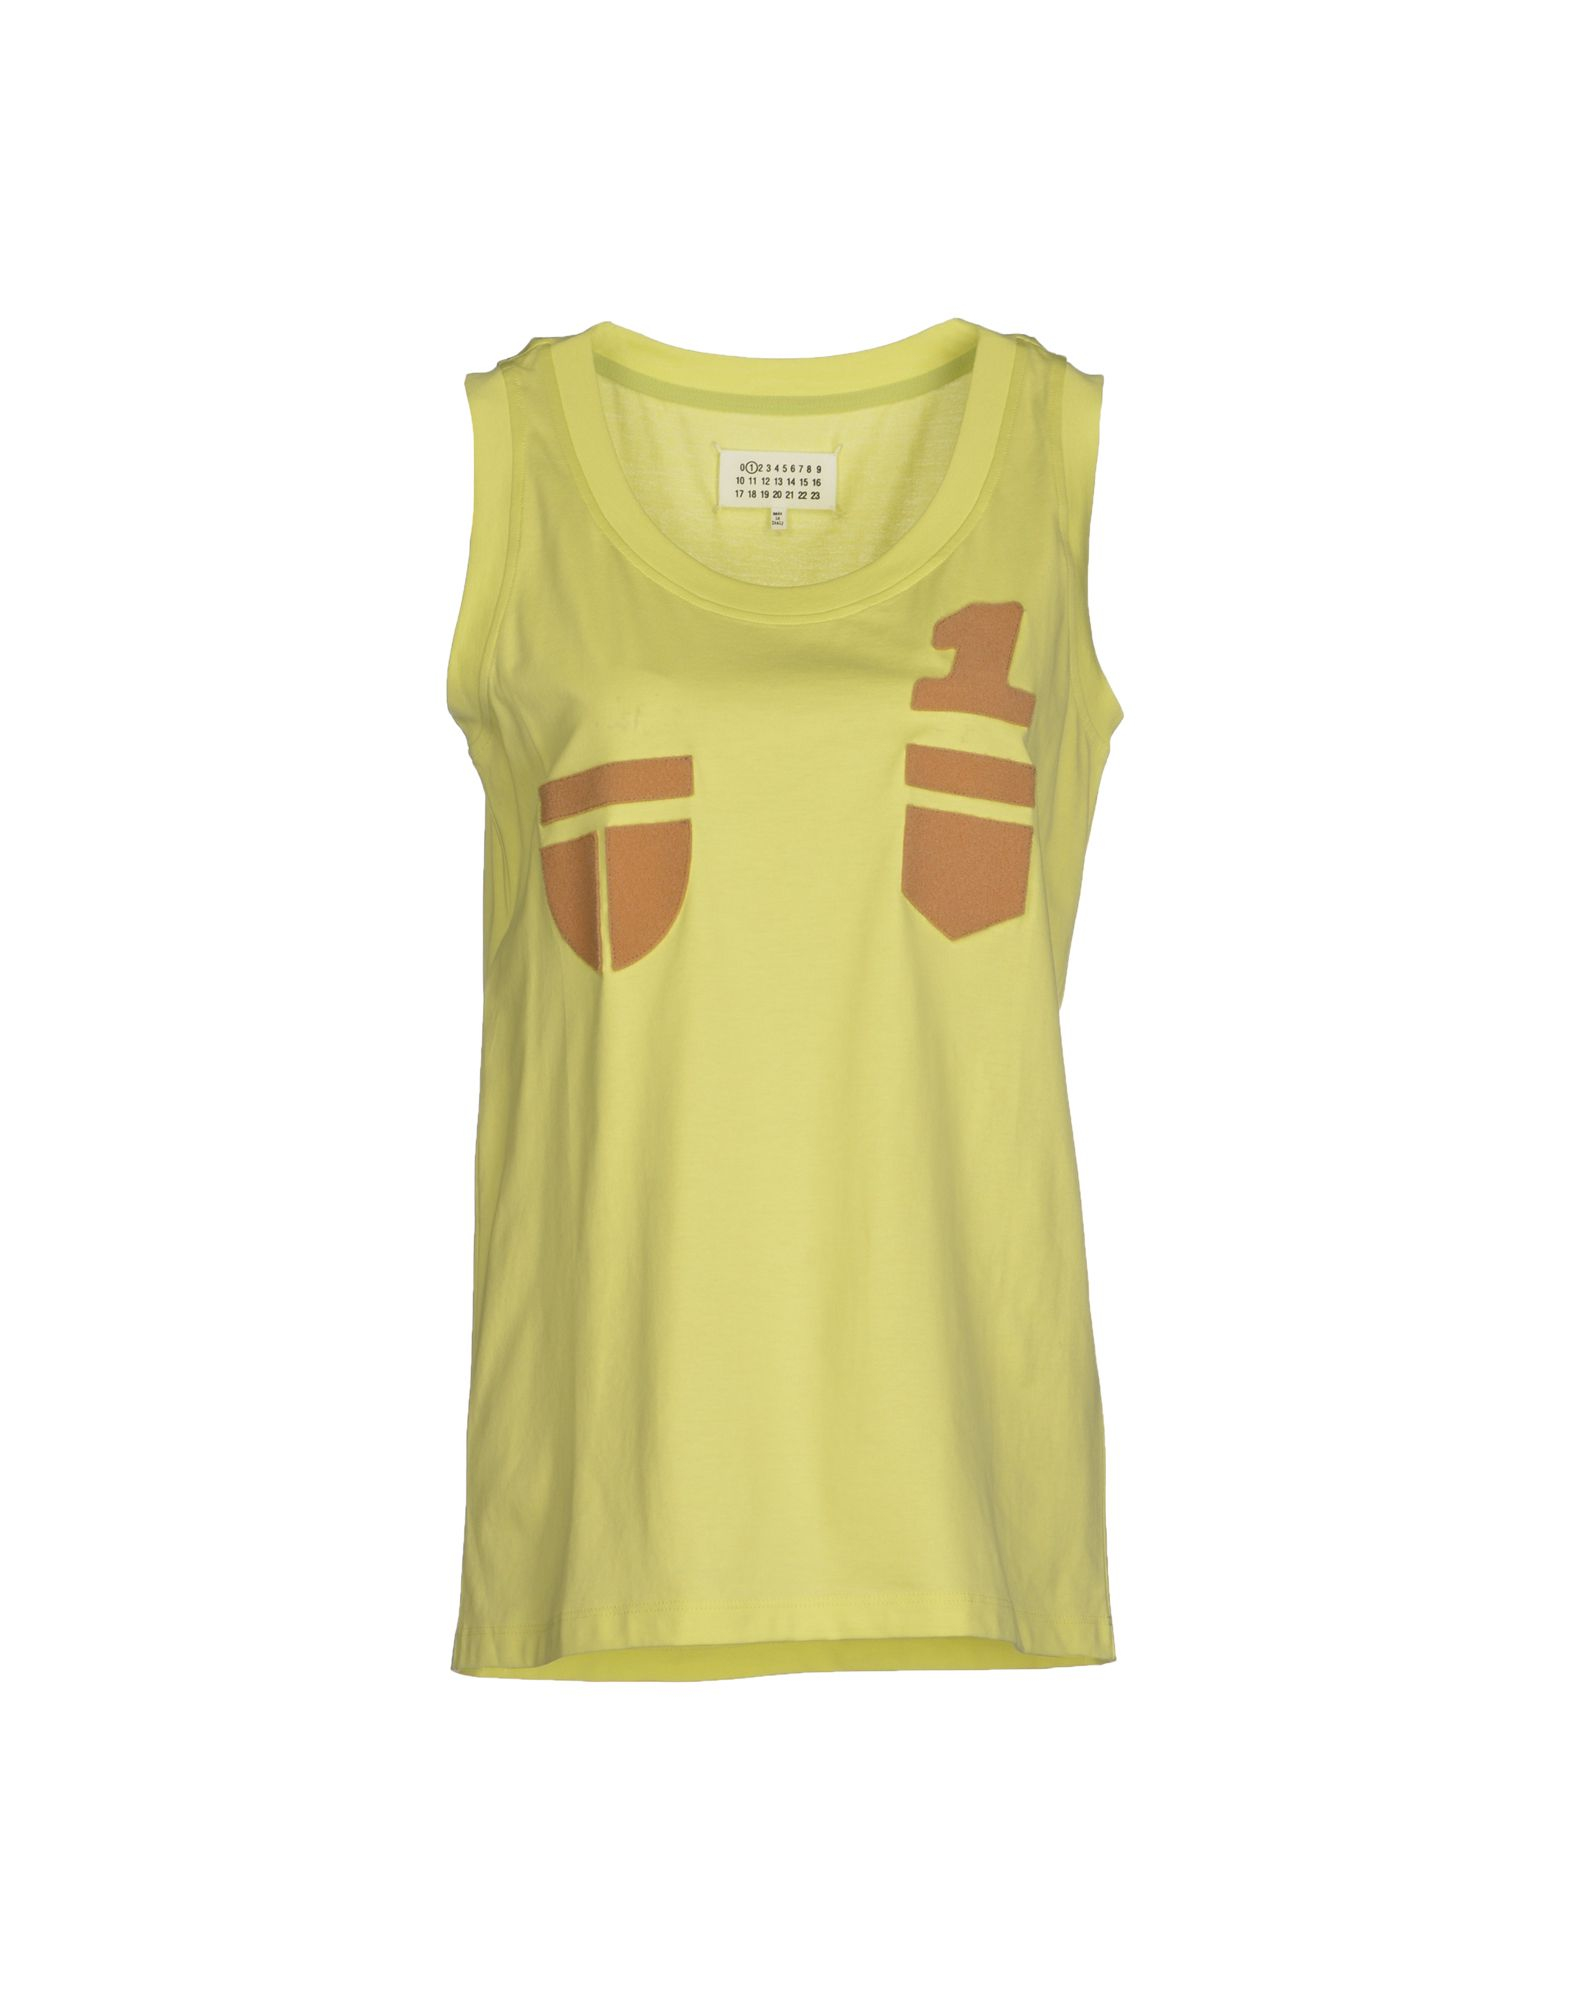 maison margiela t shirt in yellow lyst